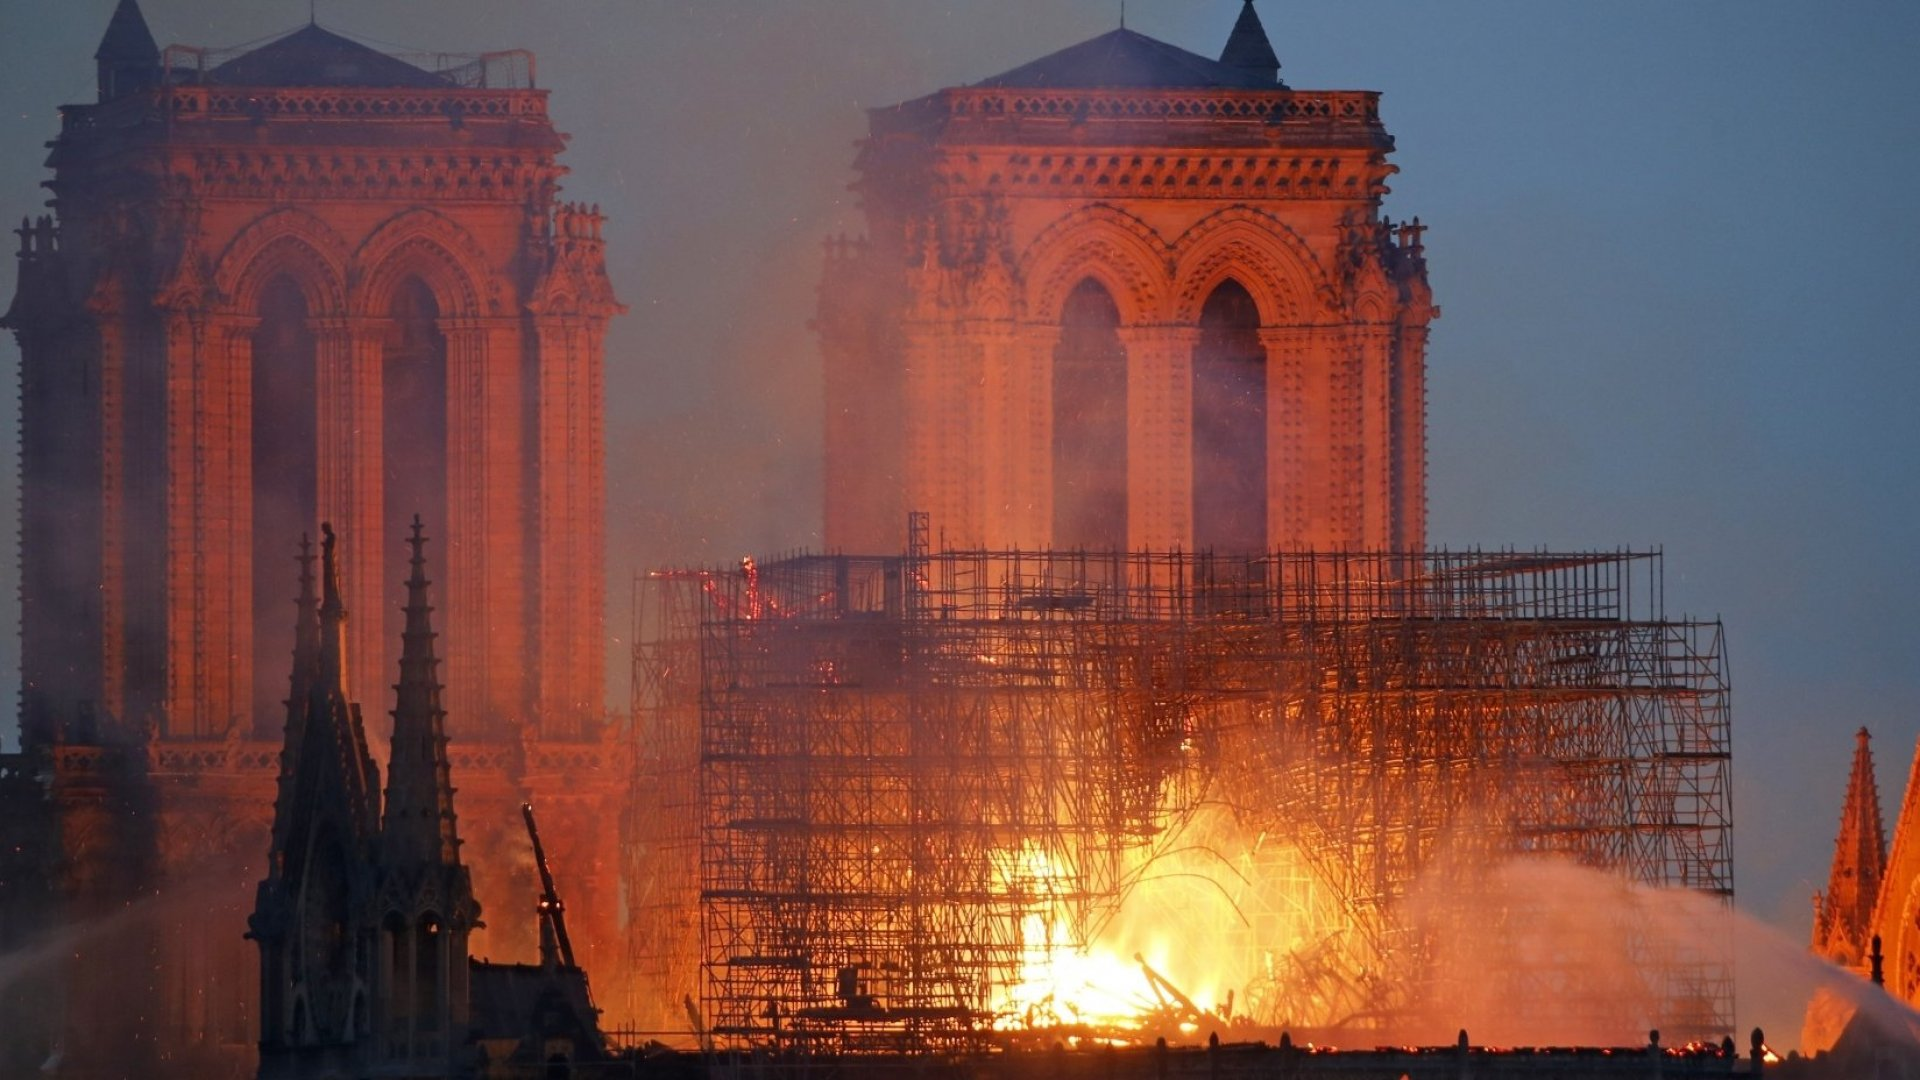 The Fire That Ripped Through Notre-Dame Was Heartbreaking. It Could Have Been So Much Worse